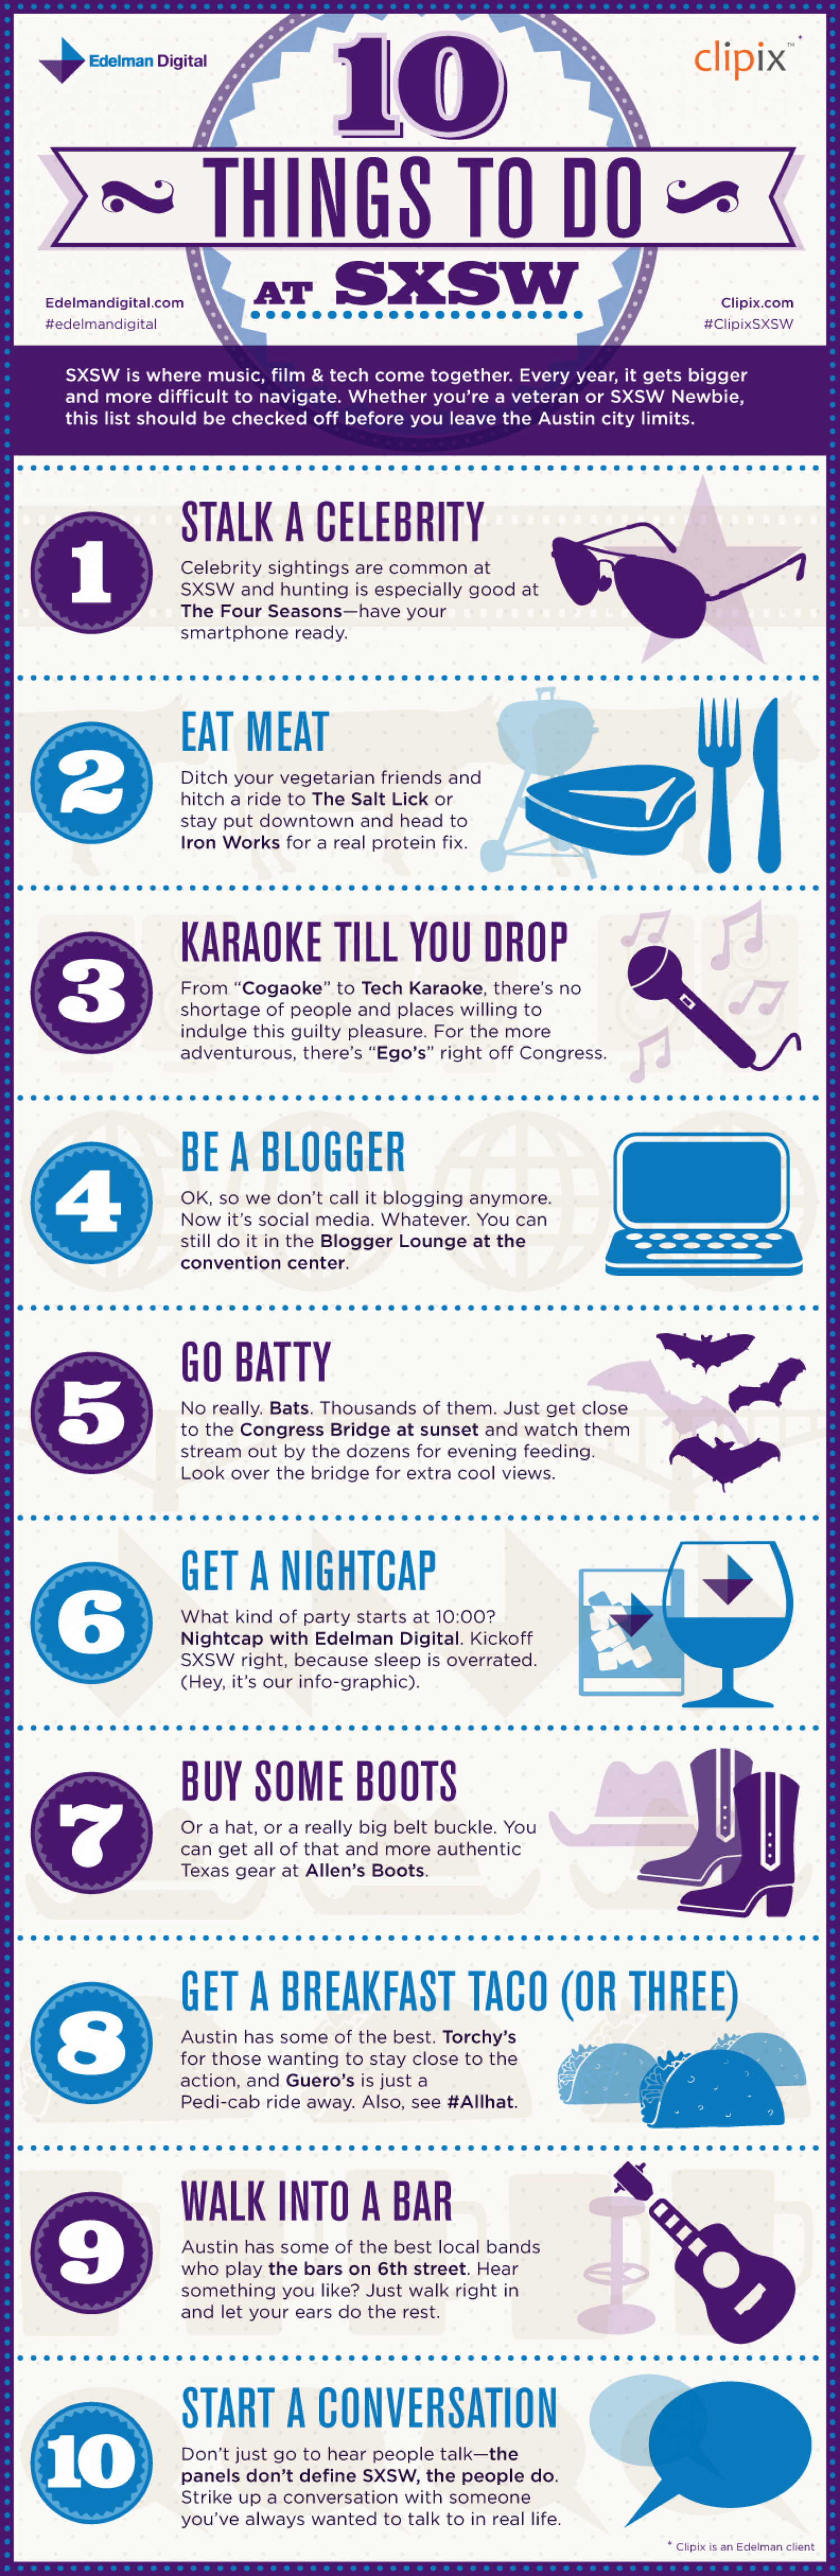 10 Things To Do at SXSW Infographic